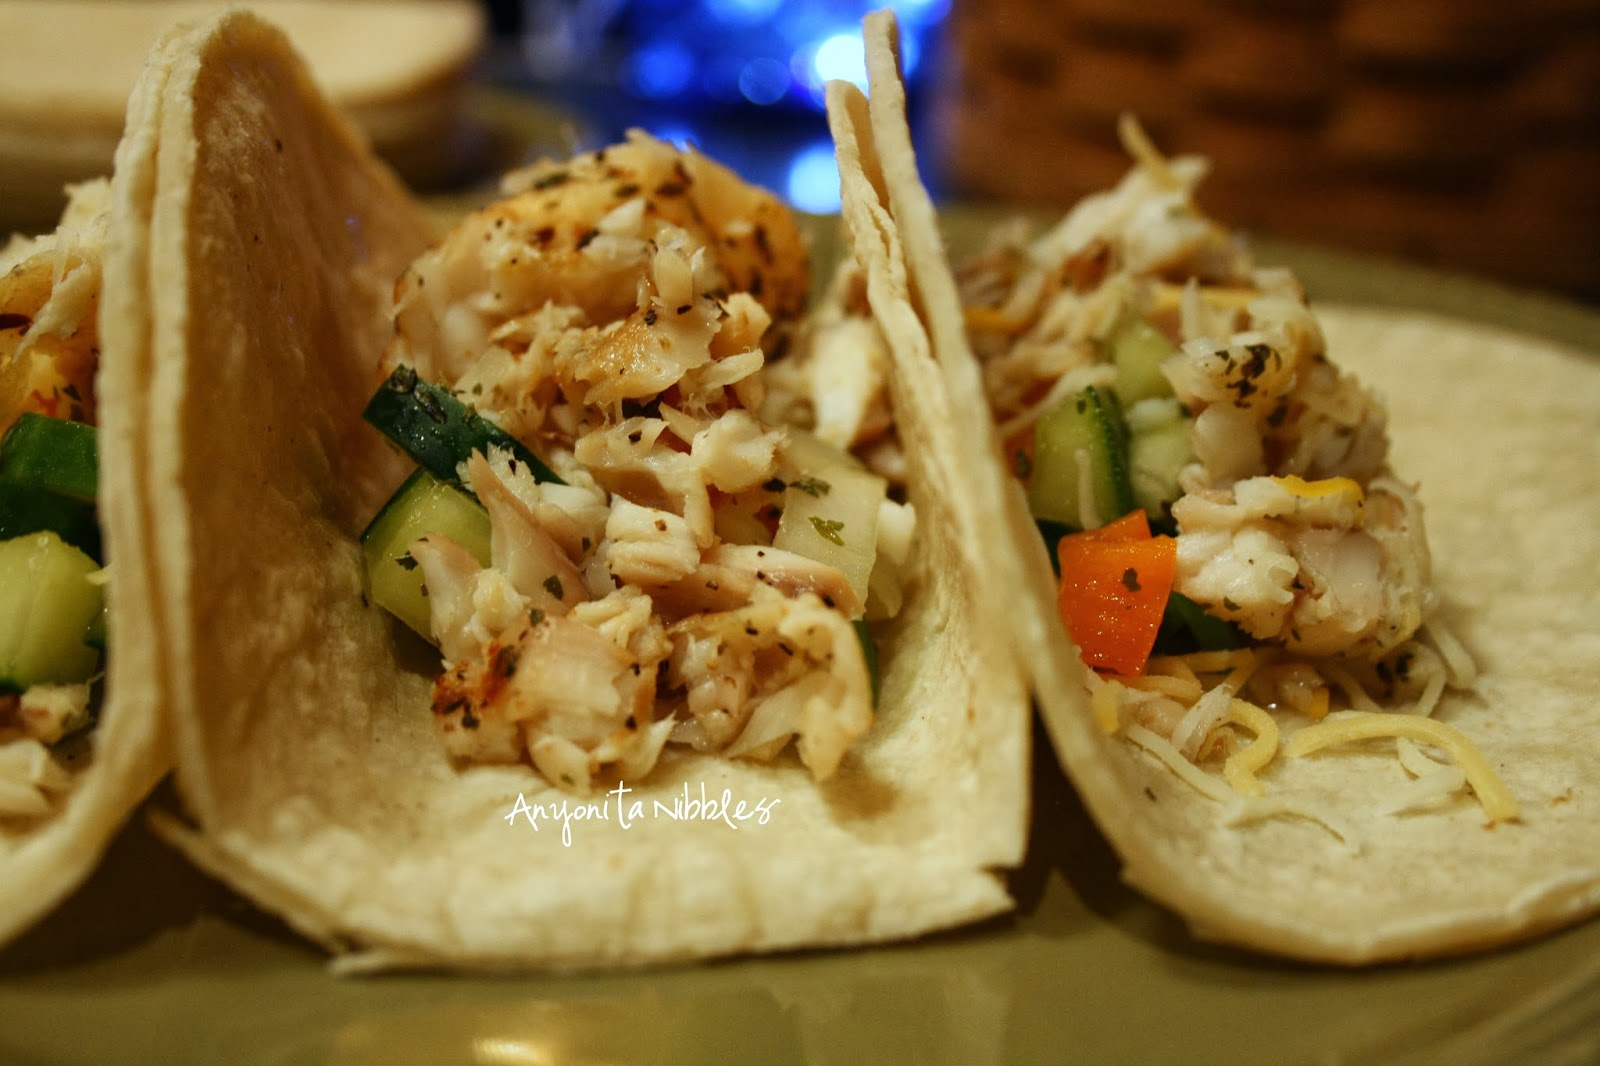 Quick weeknight dinner: grilled fish tacos from www.anyonita-nibbles.com